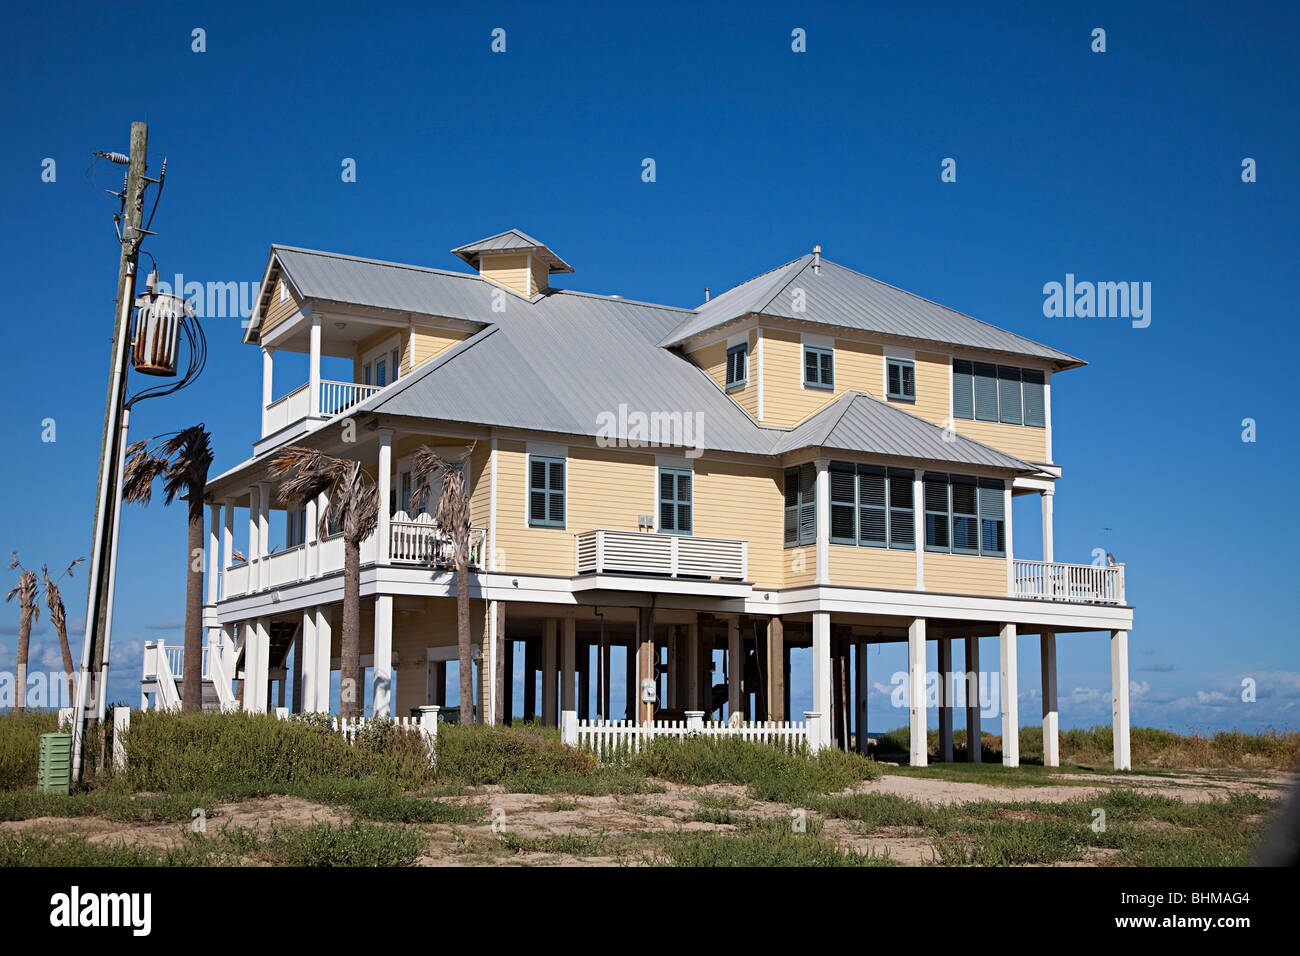 Wooden house on stilts on beach front galveston texas usa for House plans usa